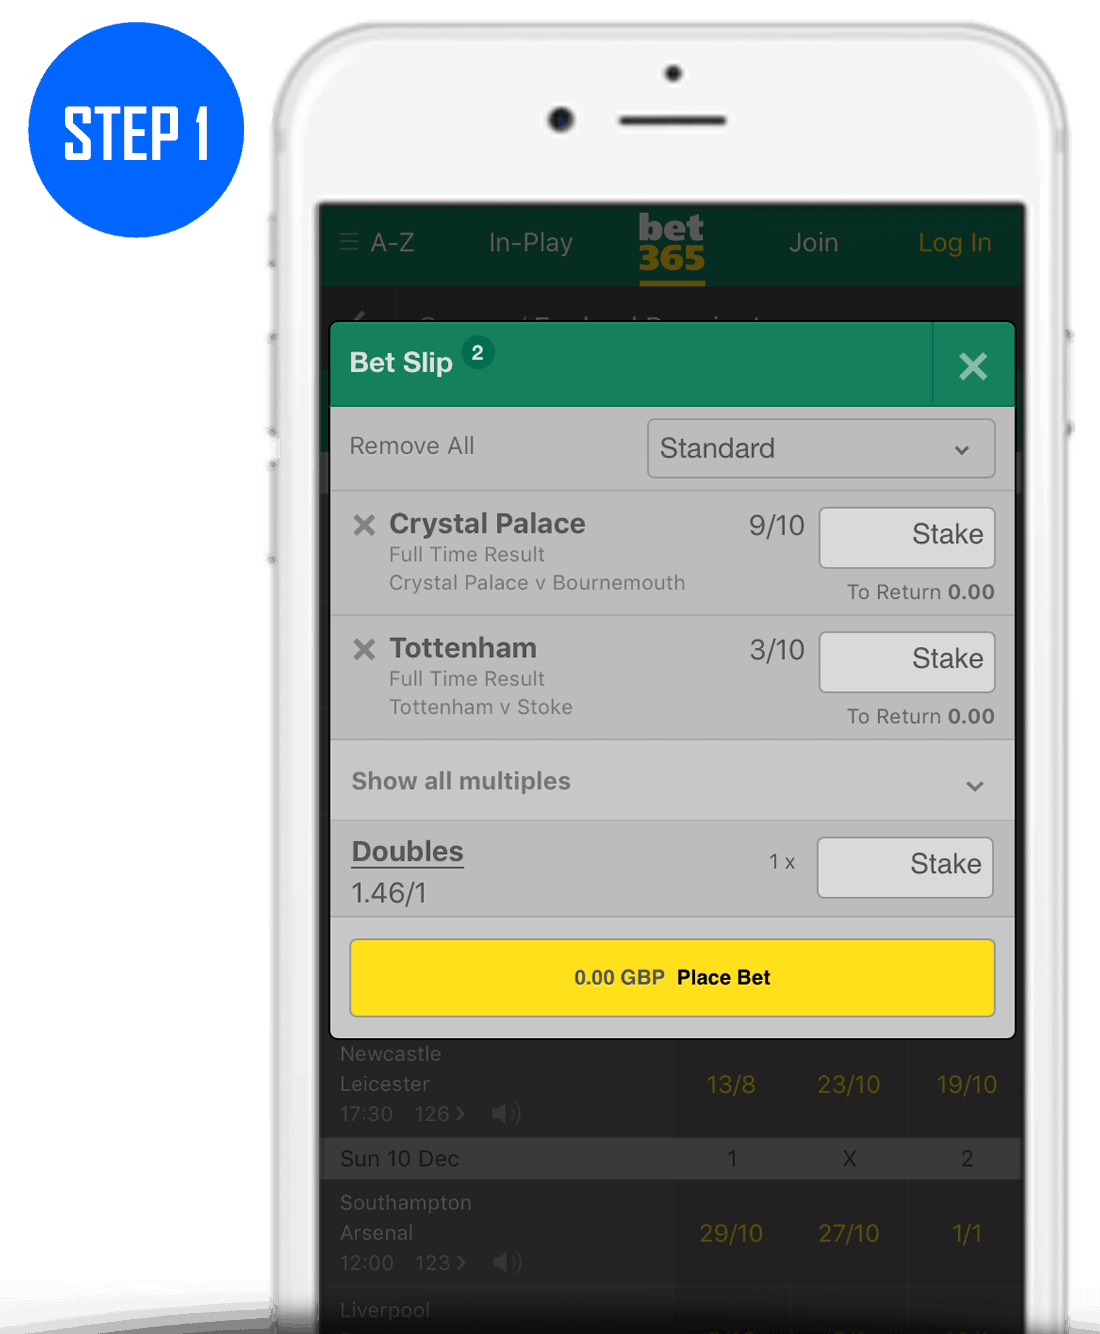 How To Place A Double Bet Step 1